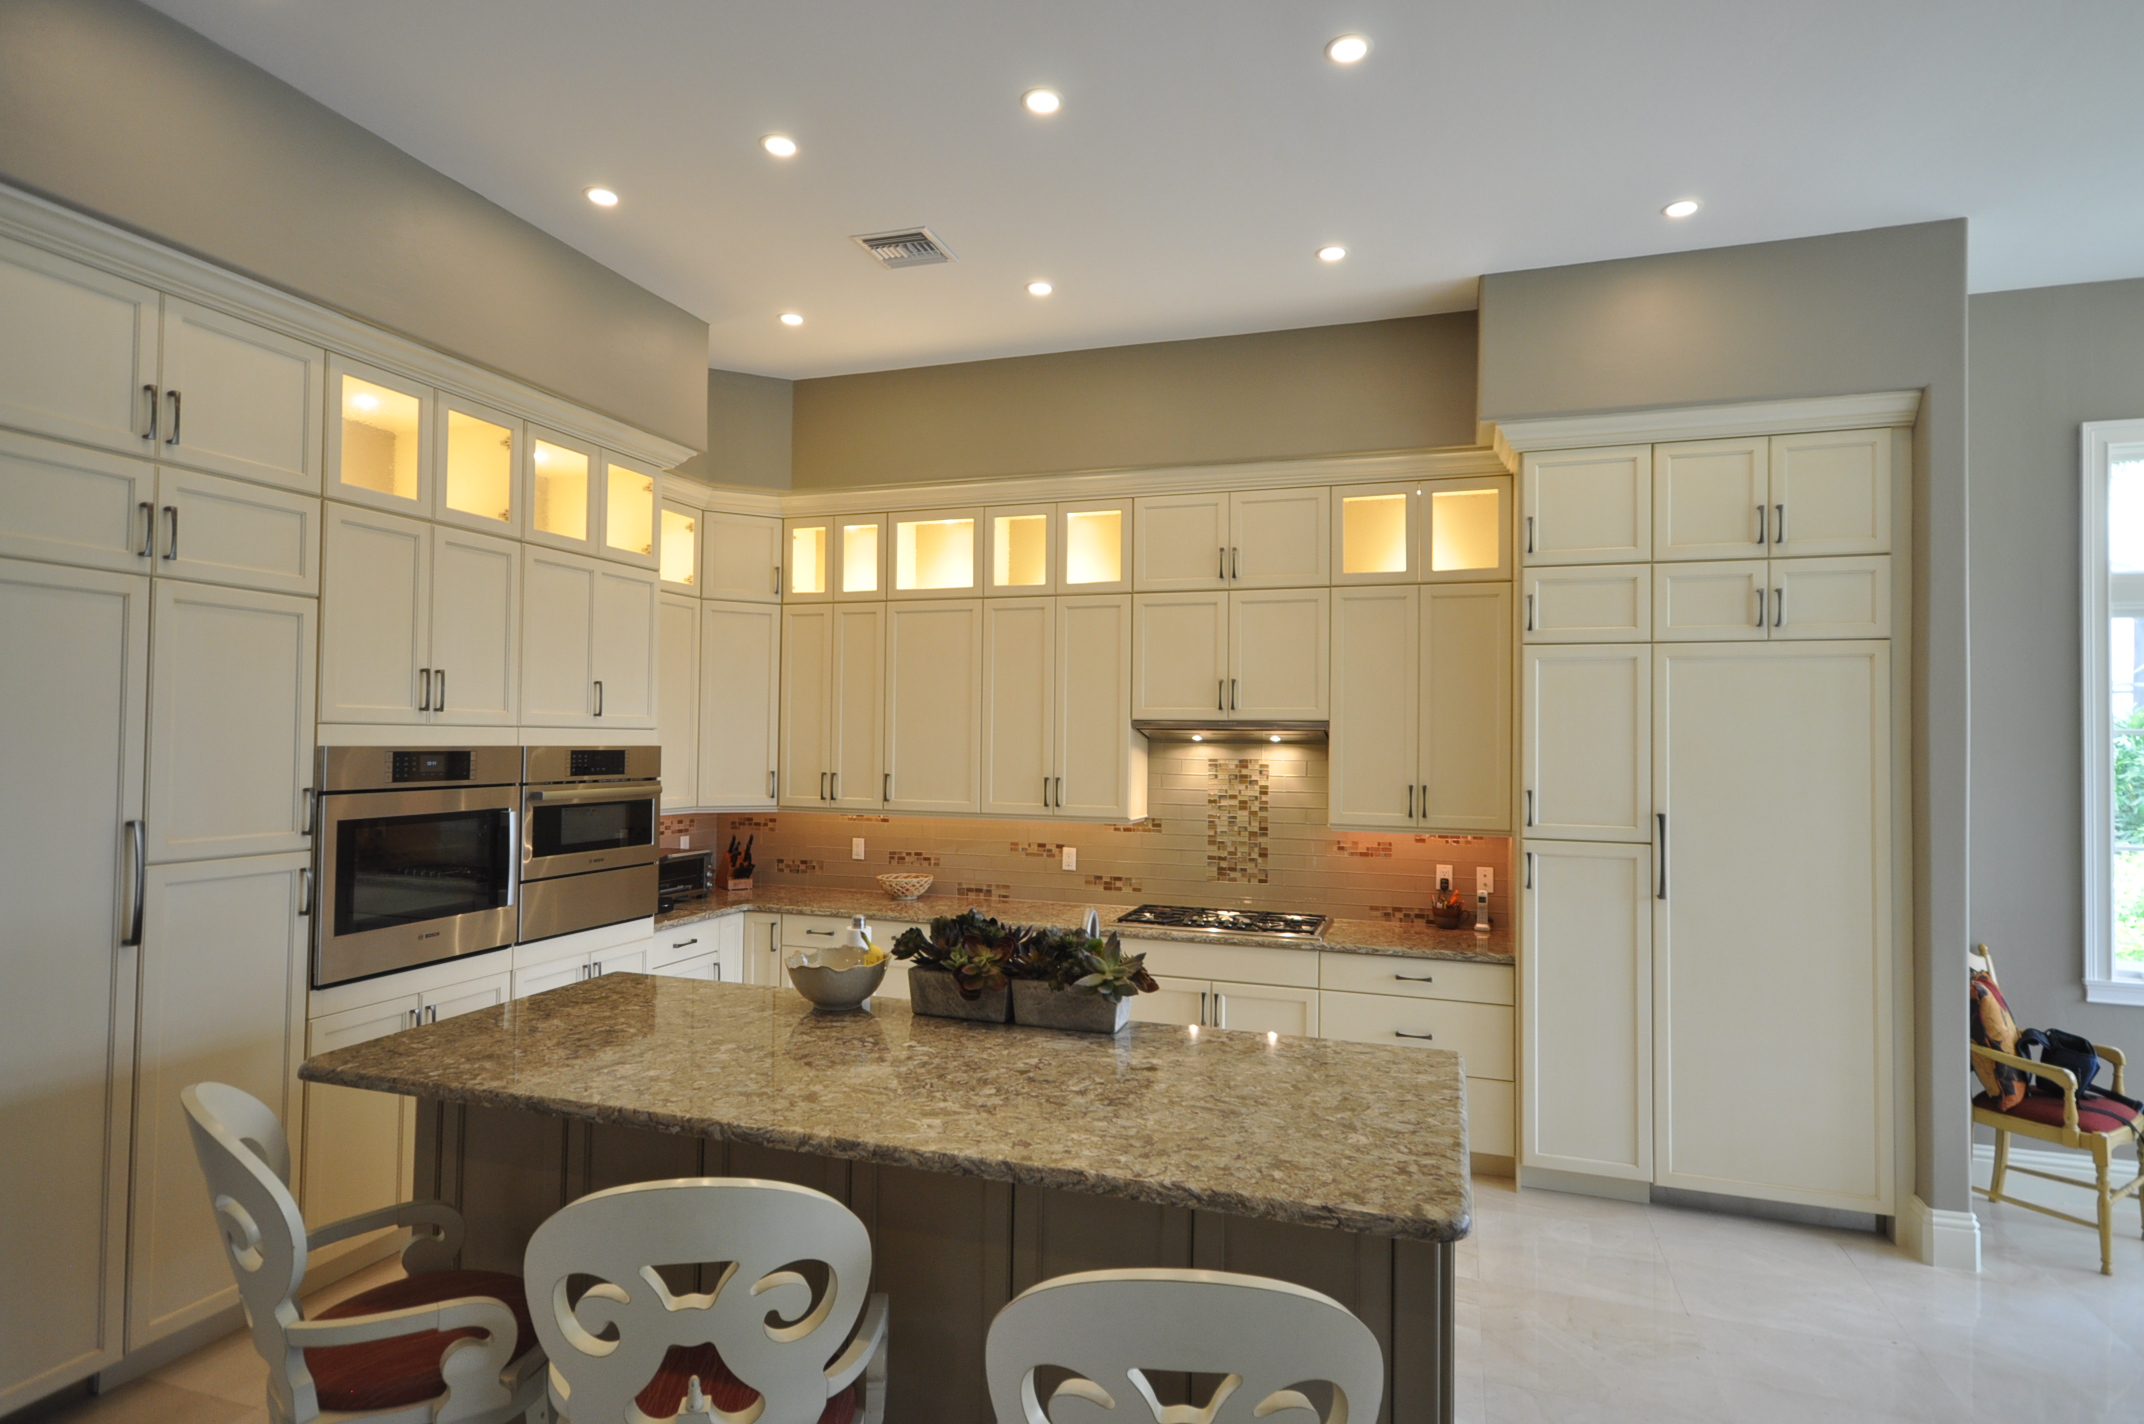 Naples Kitchen Remodeling - Perron